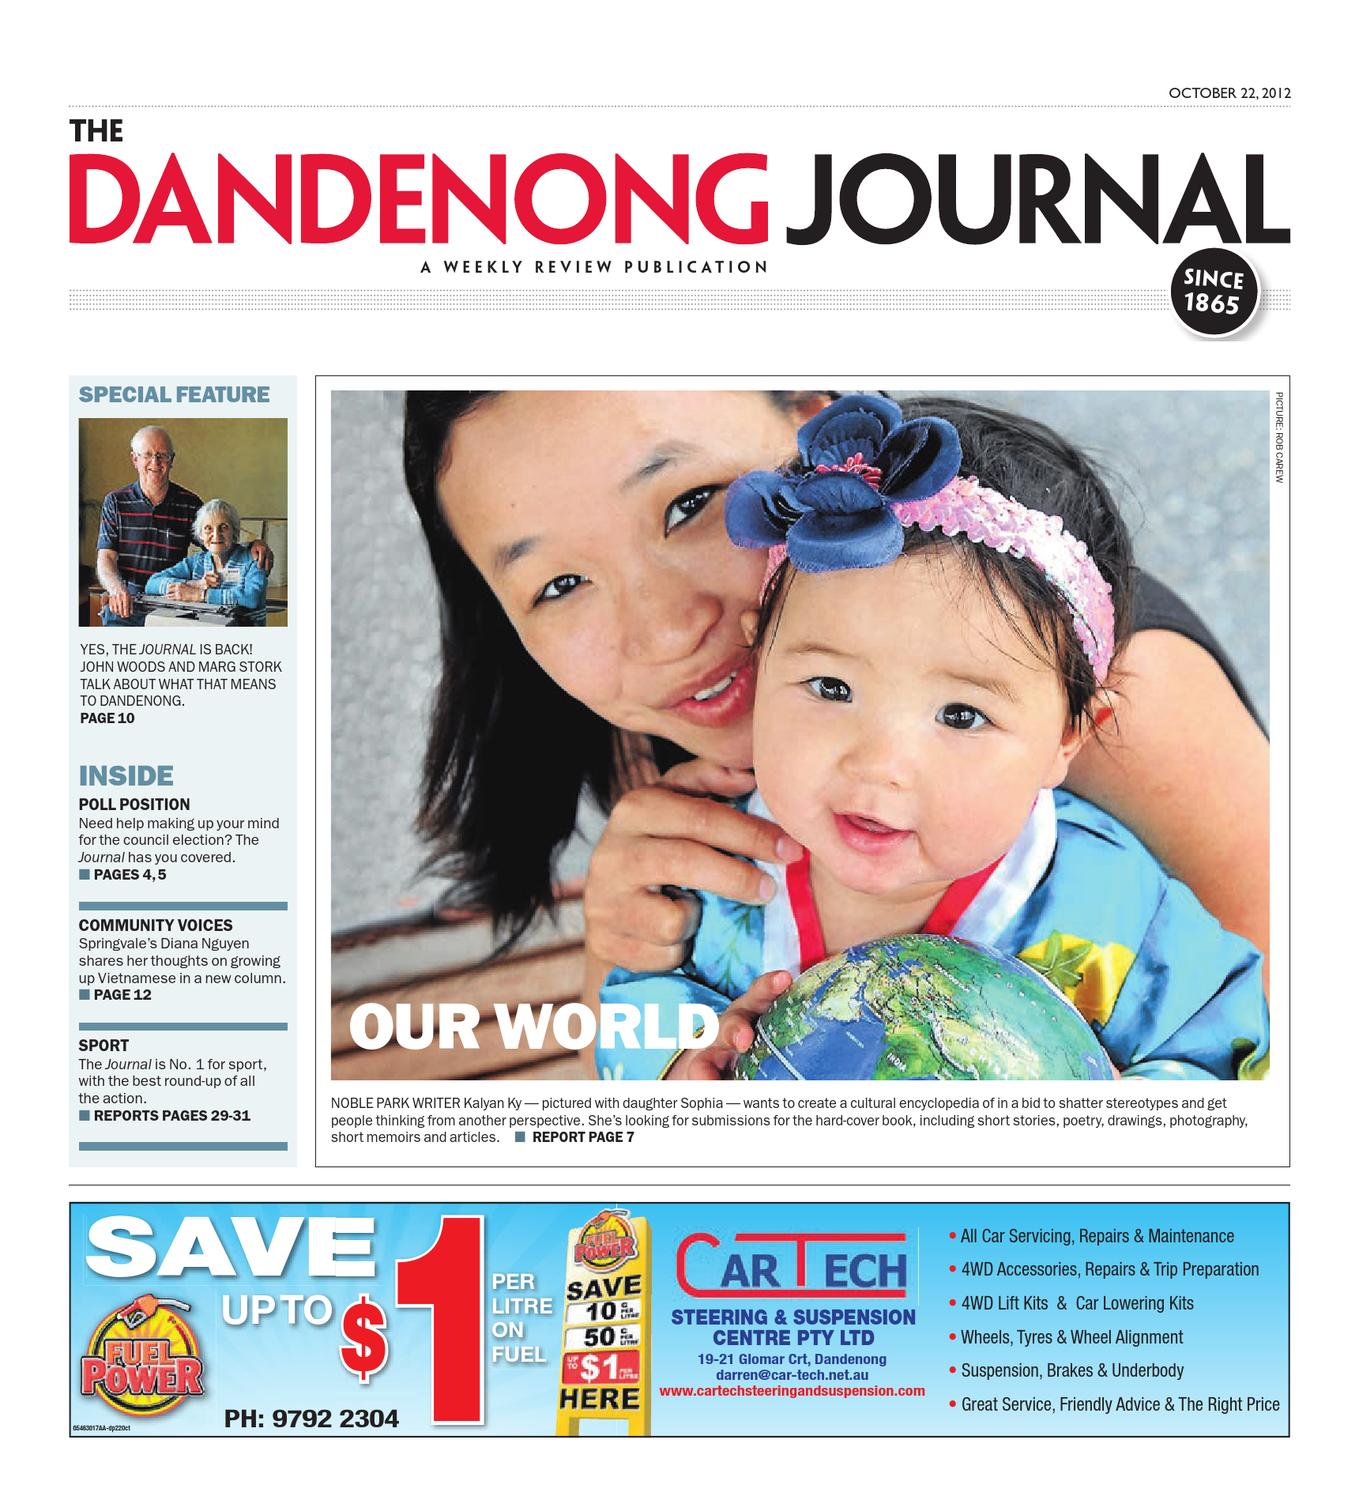 The Dandenong Journal 22 10 2012 By Weekly Review Issuu Tachometer Tach Printed Circuit Repair Board 7577 Usa Made Willcox